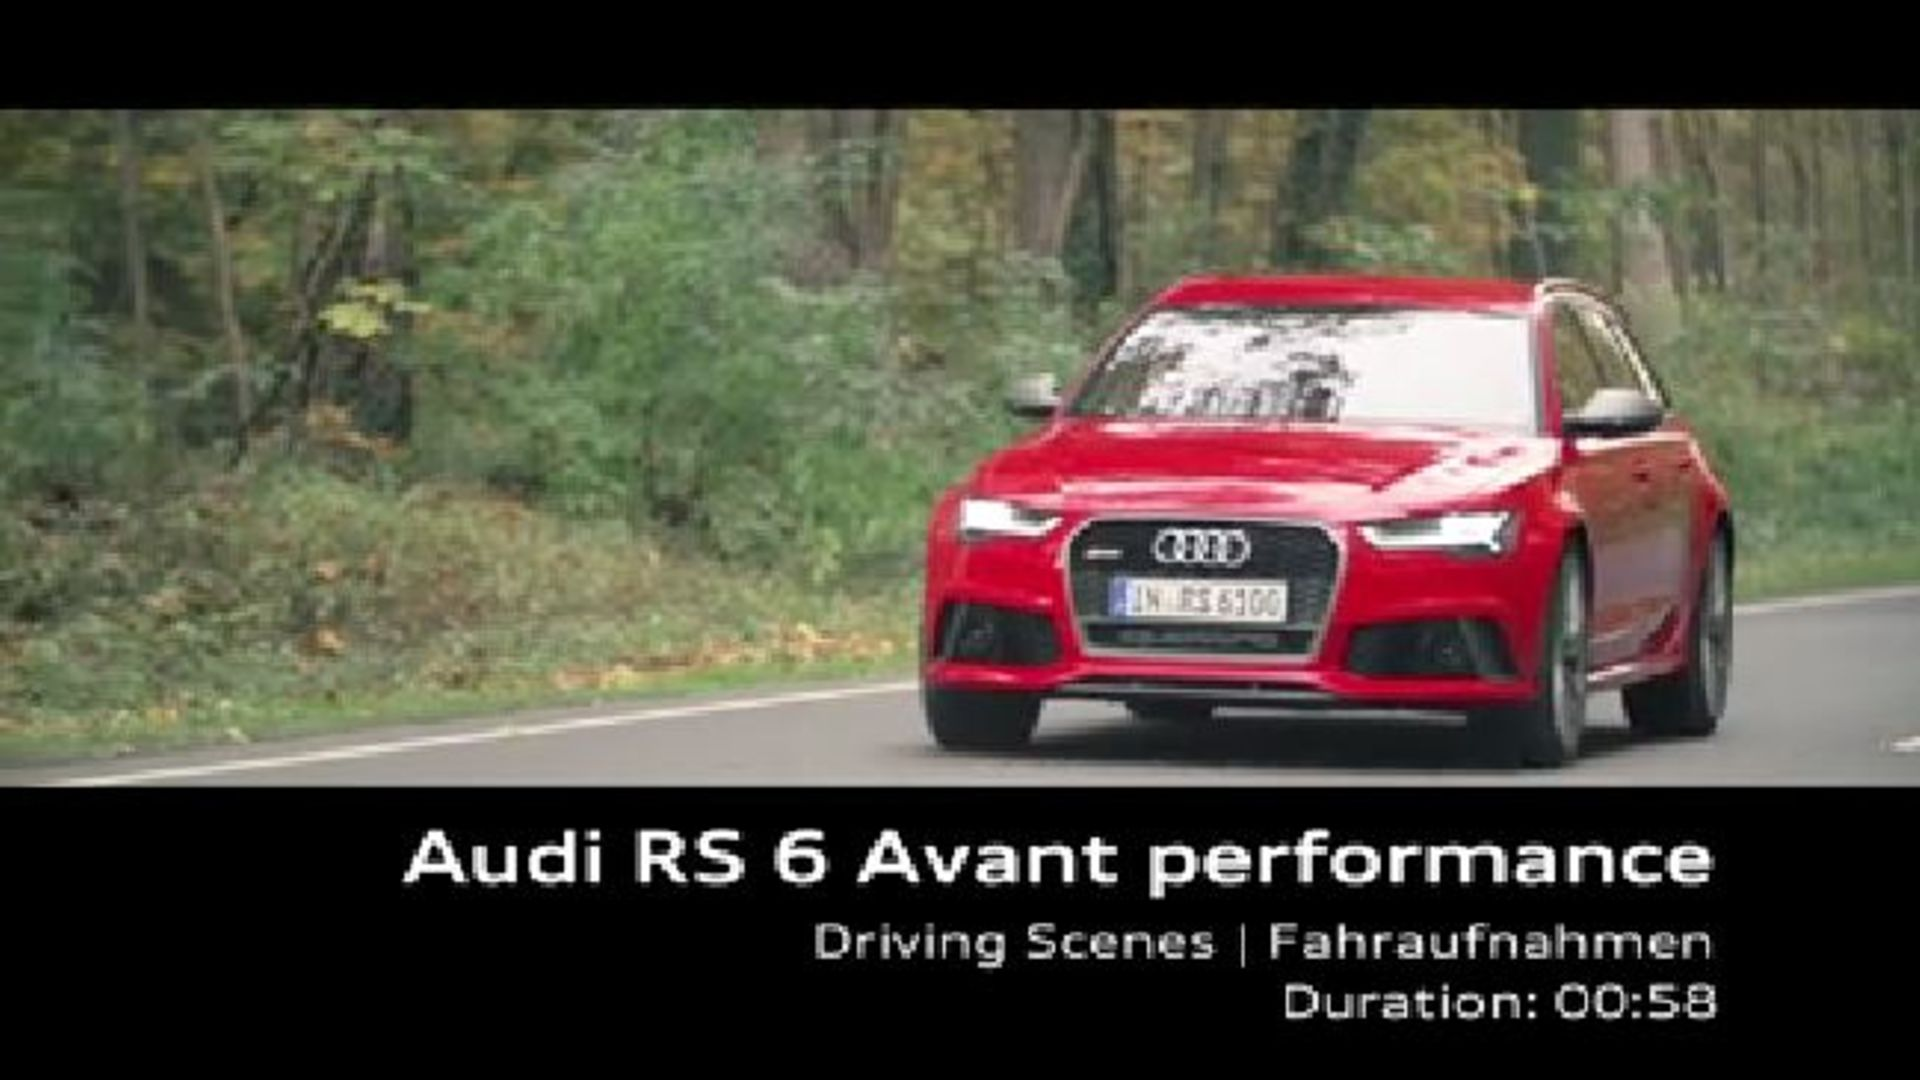 Audi RS 6 Avant performance - Footage 2015